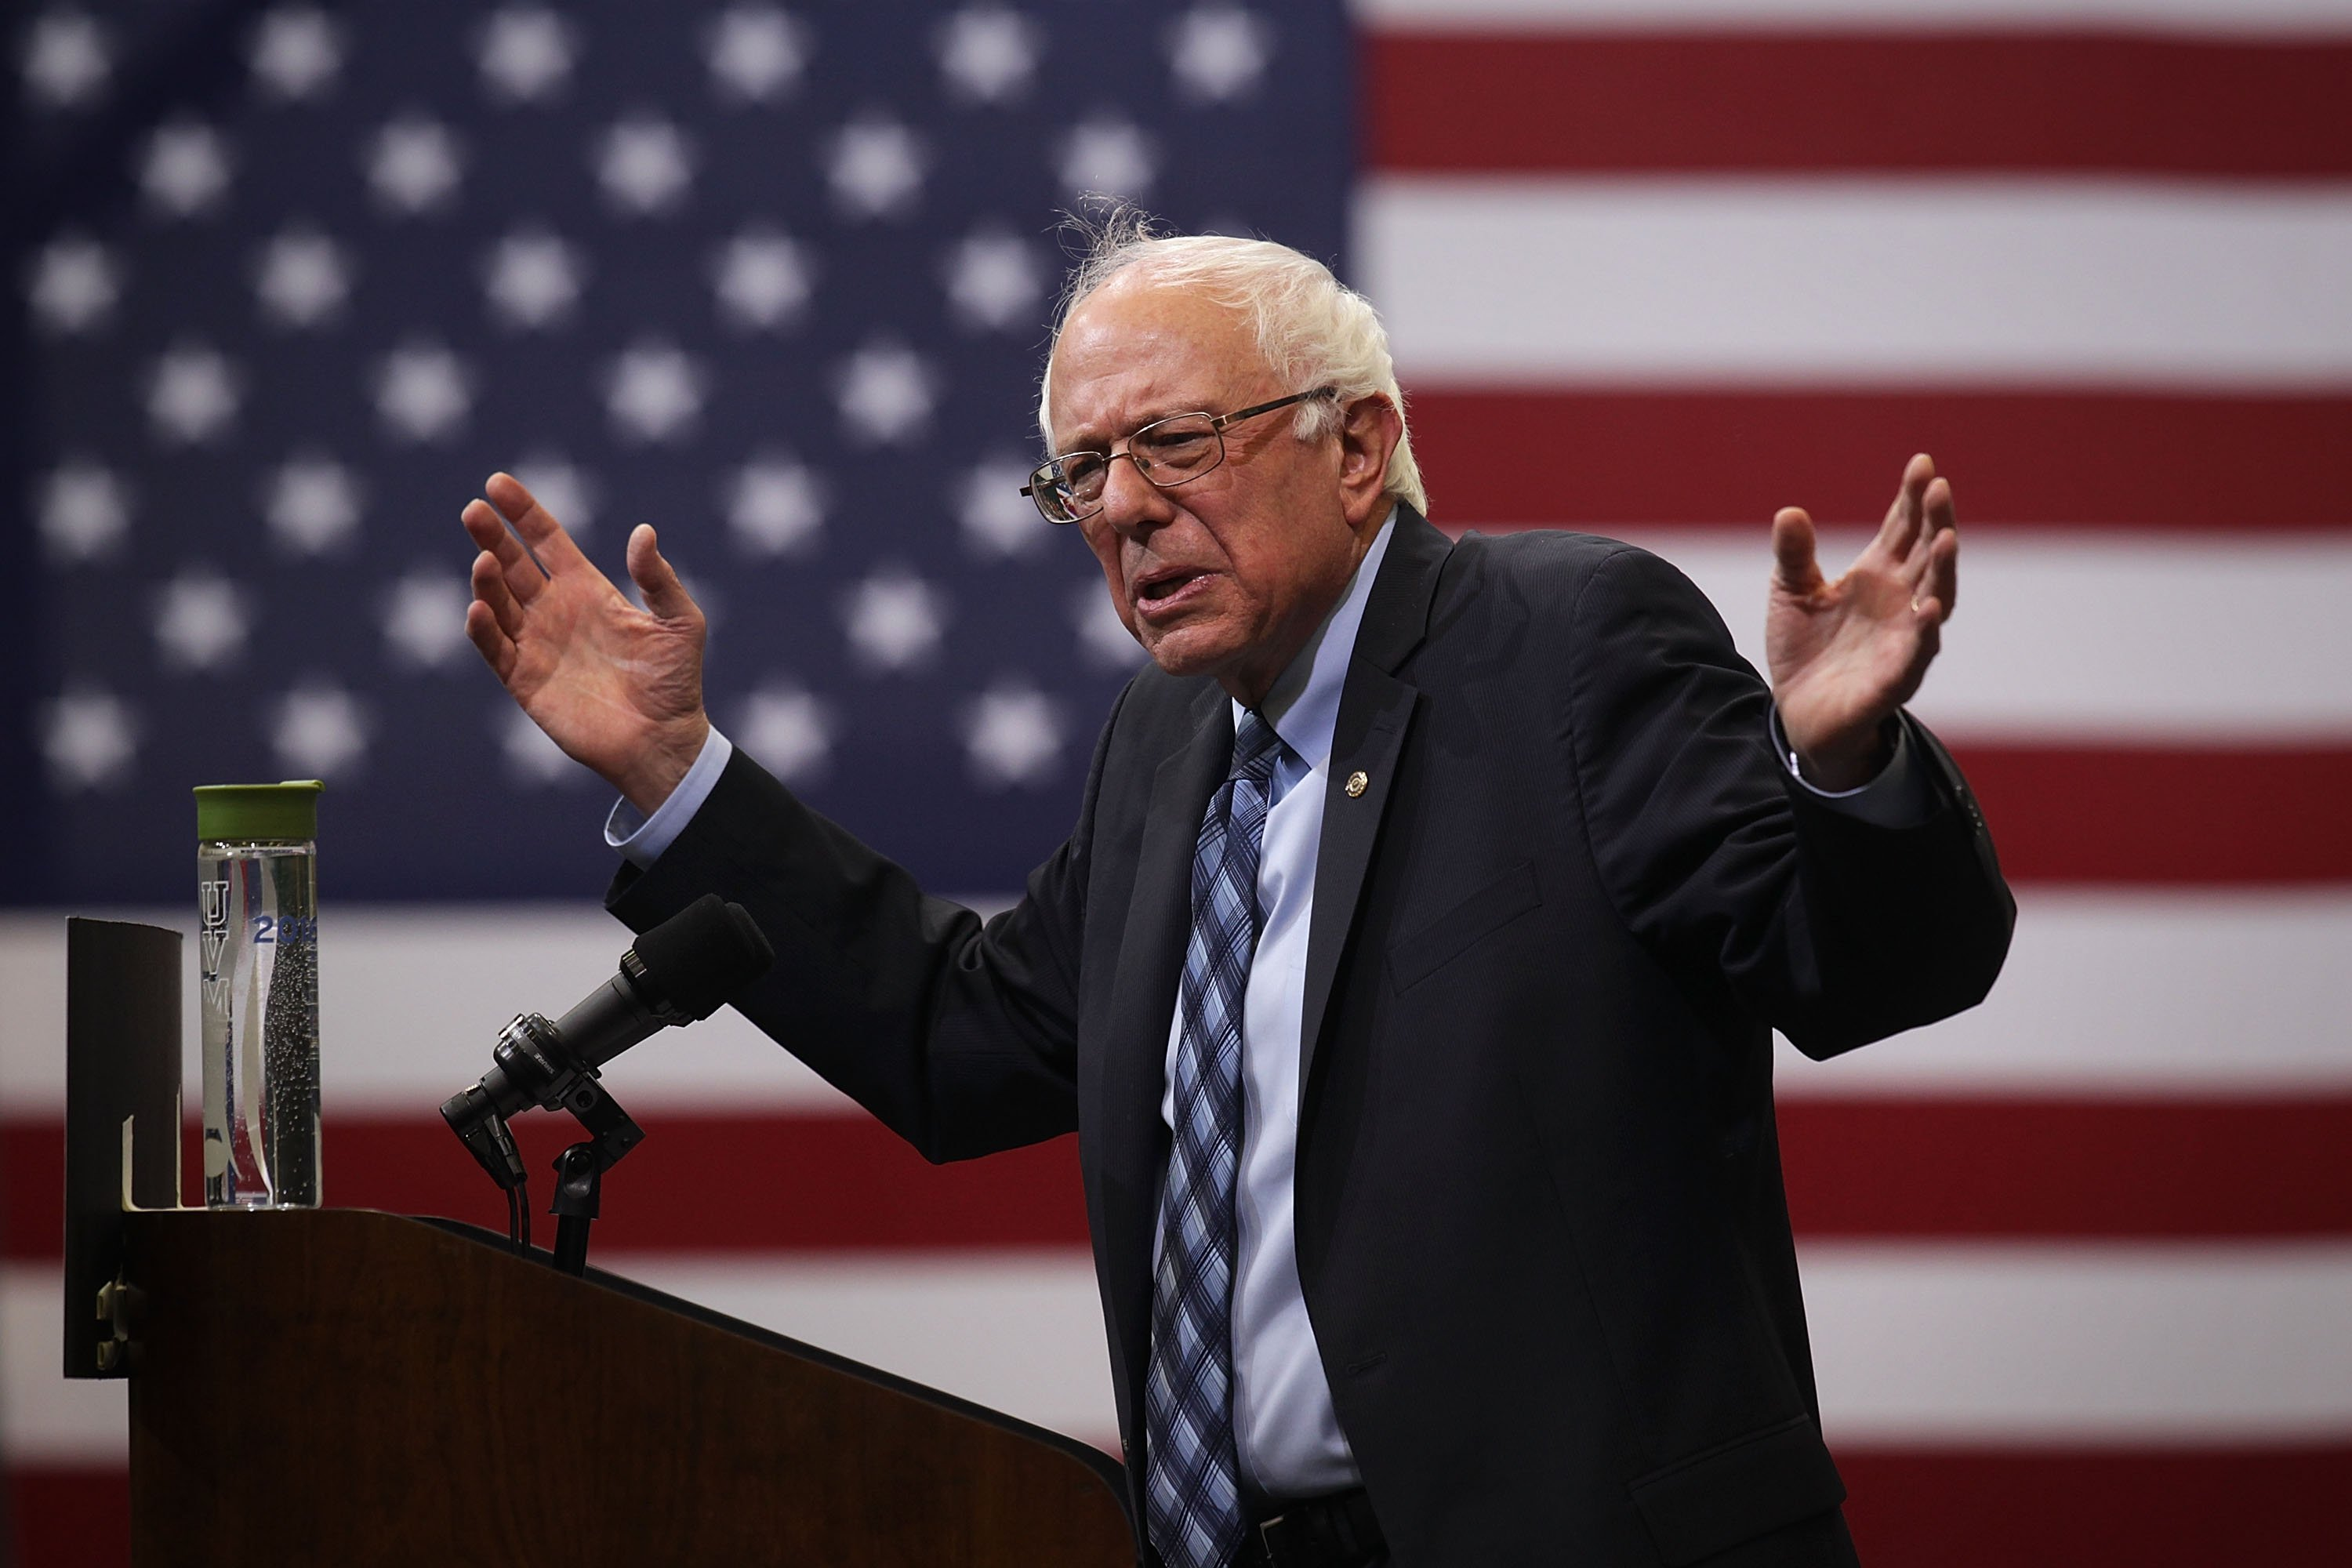 Democratic presidential candidate and U.S. Sen. Bernie Sanders (I-VT) speaks during a  National Student Town Hall  at George Mason University on Oct. 28, 2015 in Fairfax, Virginia.